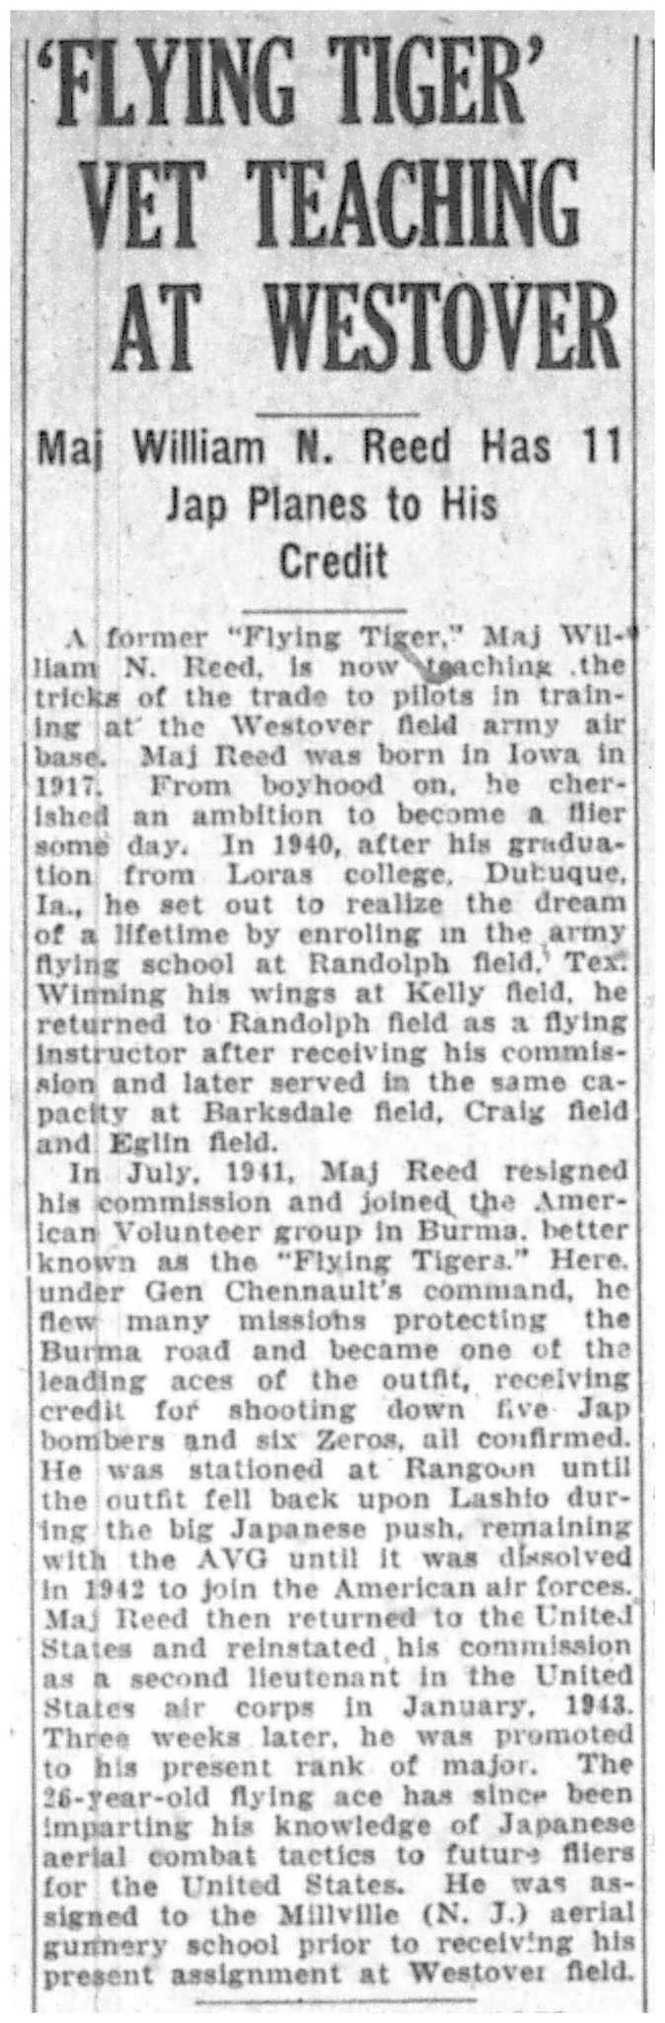 From the July 10, 1943 edition of The Springfield Daily News